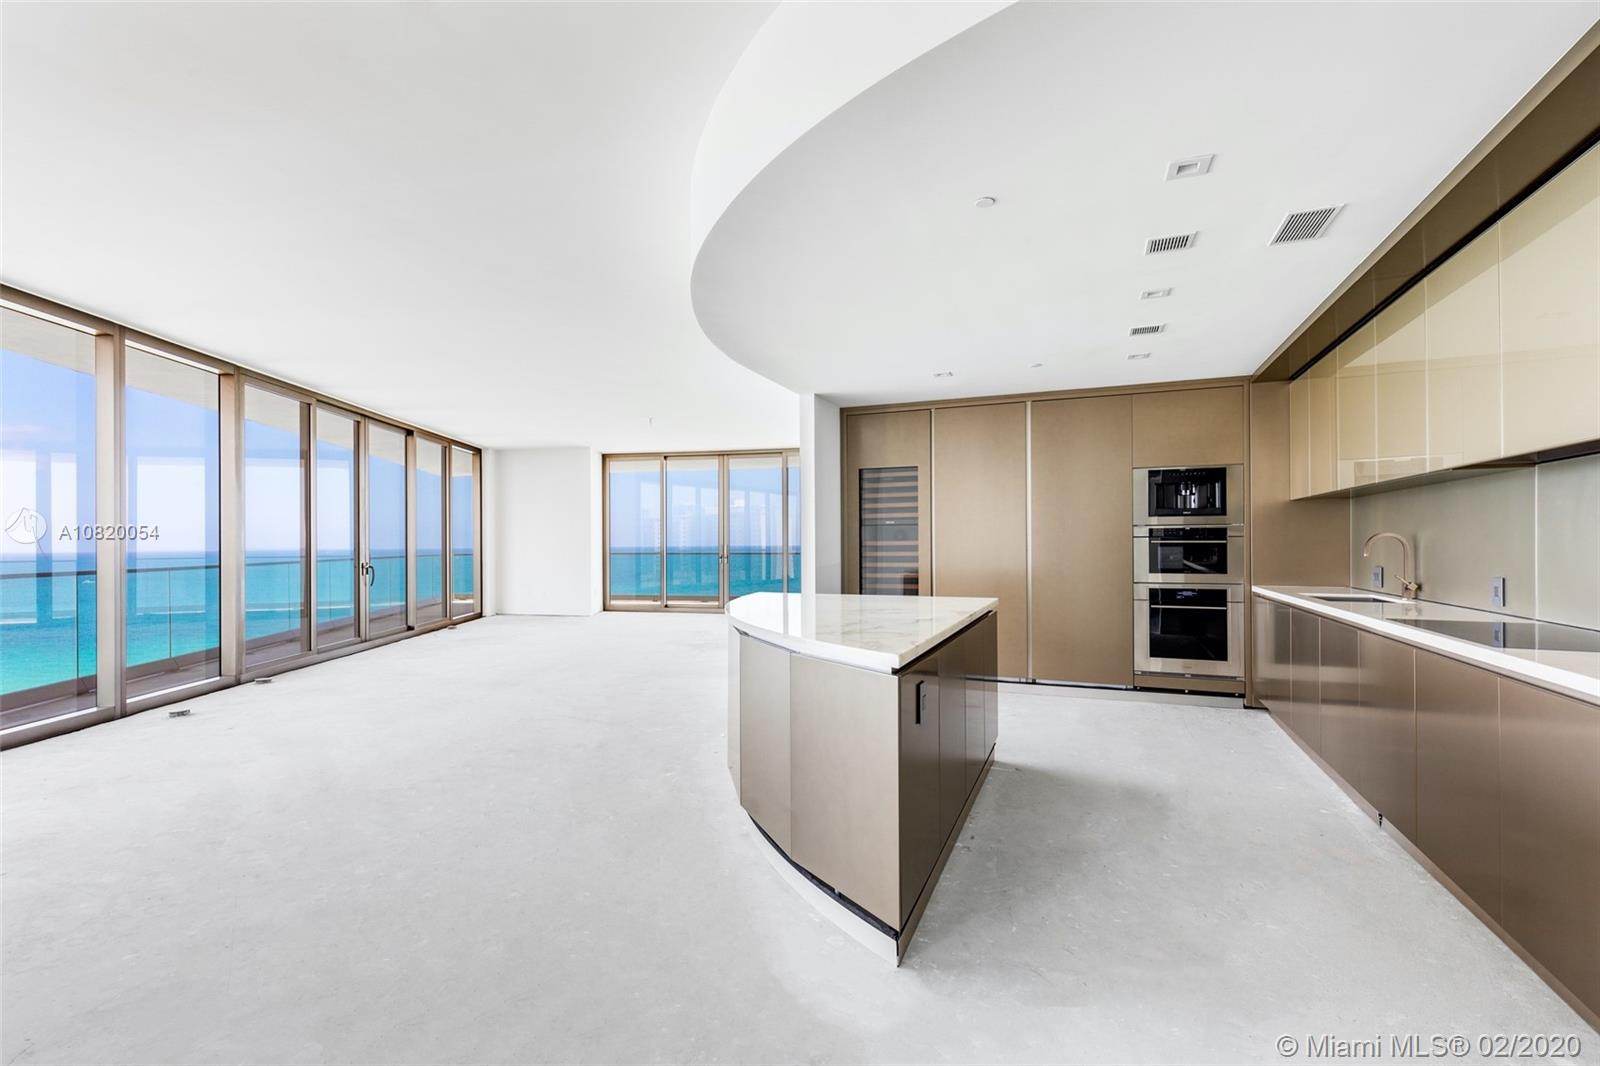 Legendary designer Giorgio Armani brings his inimitable sensibility & talent for understated elegance to Sunny Isles Beach with Residences by Armani Casa. Residence 700, the largest corner layout (4bed/5.5 bath + Service), is the only line with a private foyer. The interior living space is spacious, modern & elegant with 10 Ft ceilings offering incomparable views of the Atlantic Ocean. Expansive 10 foot-deep balconies with summer kitchen create a seamless expansion of living space into the fresh air. Sleek European kitchen. Smart residence w/digital thermostat. Impeccable master suite with midnight bar, his & hers baths with breathtaking ocean view.  Armani Casa residents can indulge in beach service, full service spa, private restaurant, game room, cigar/wine room, & child's play room.